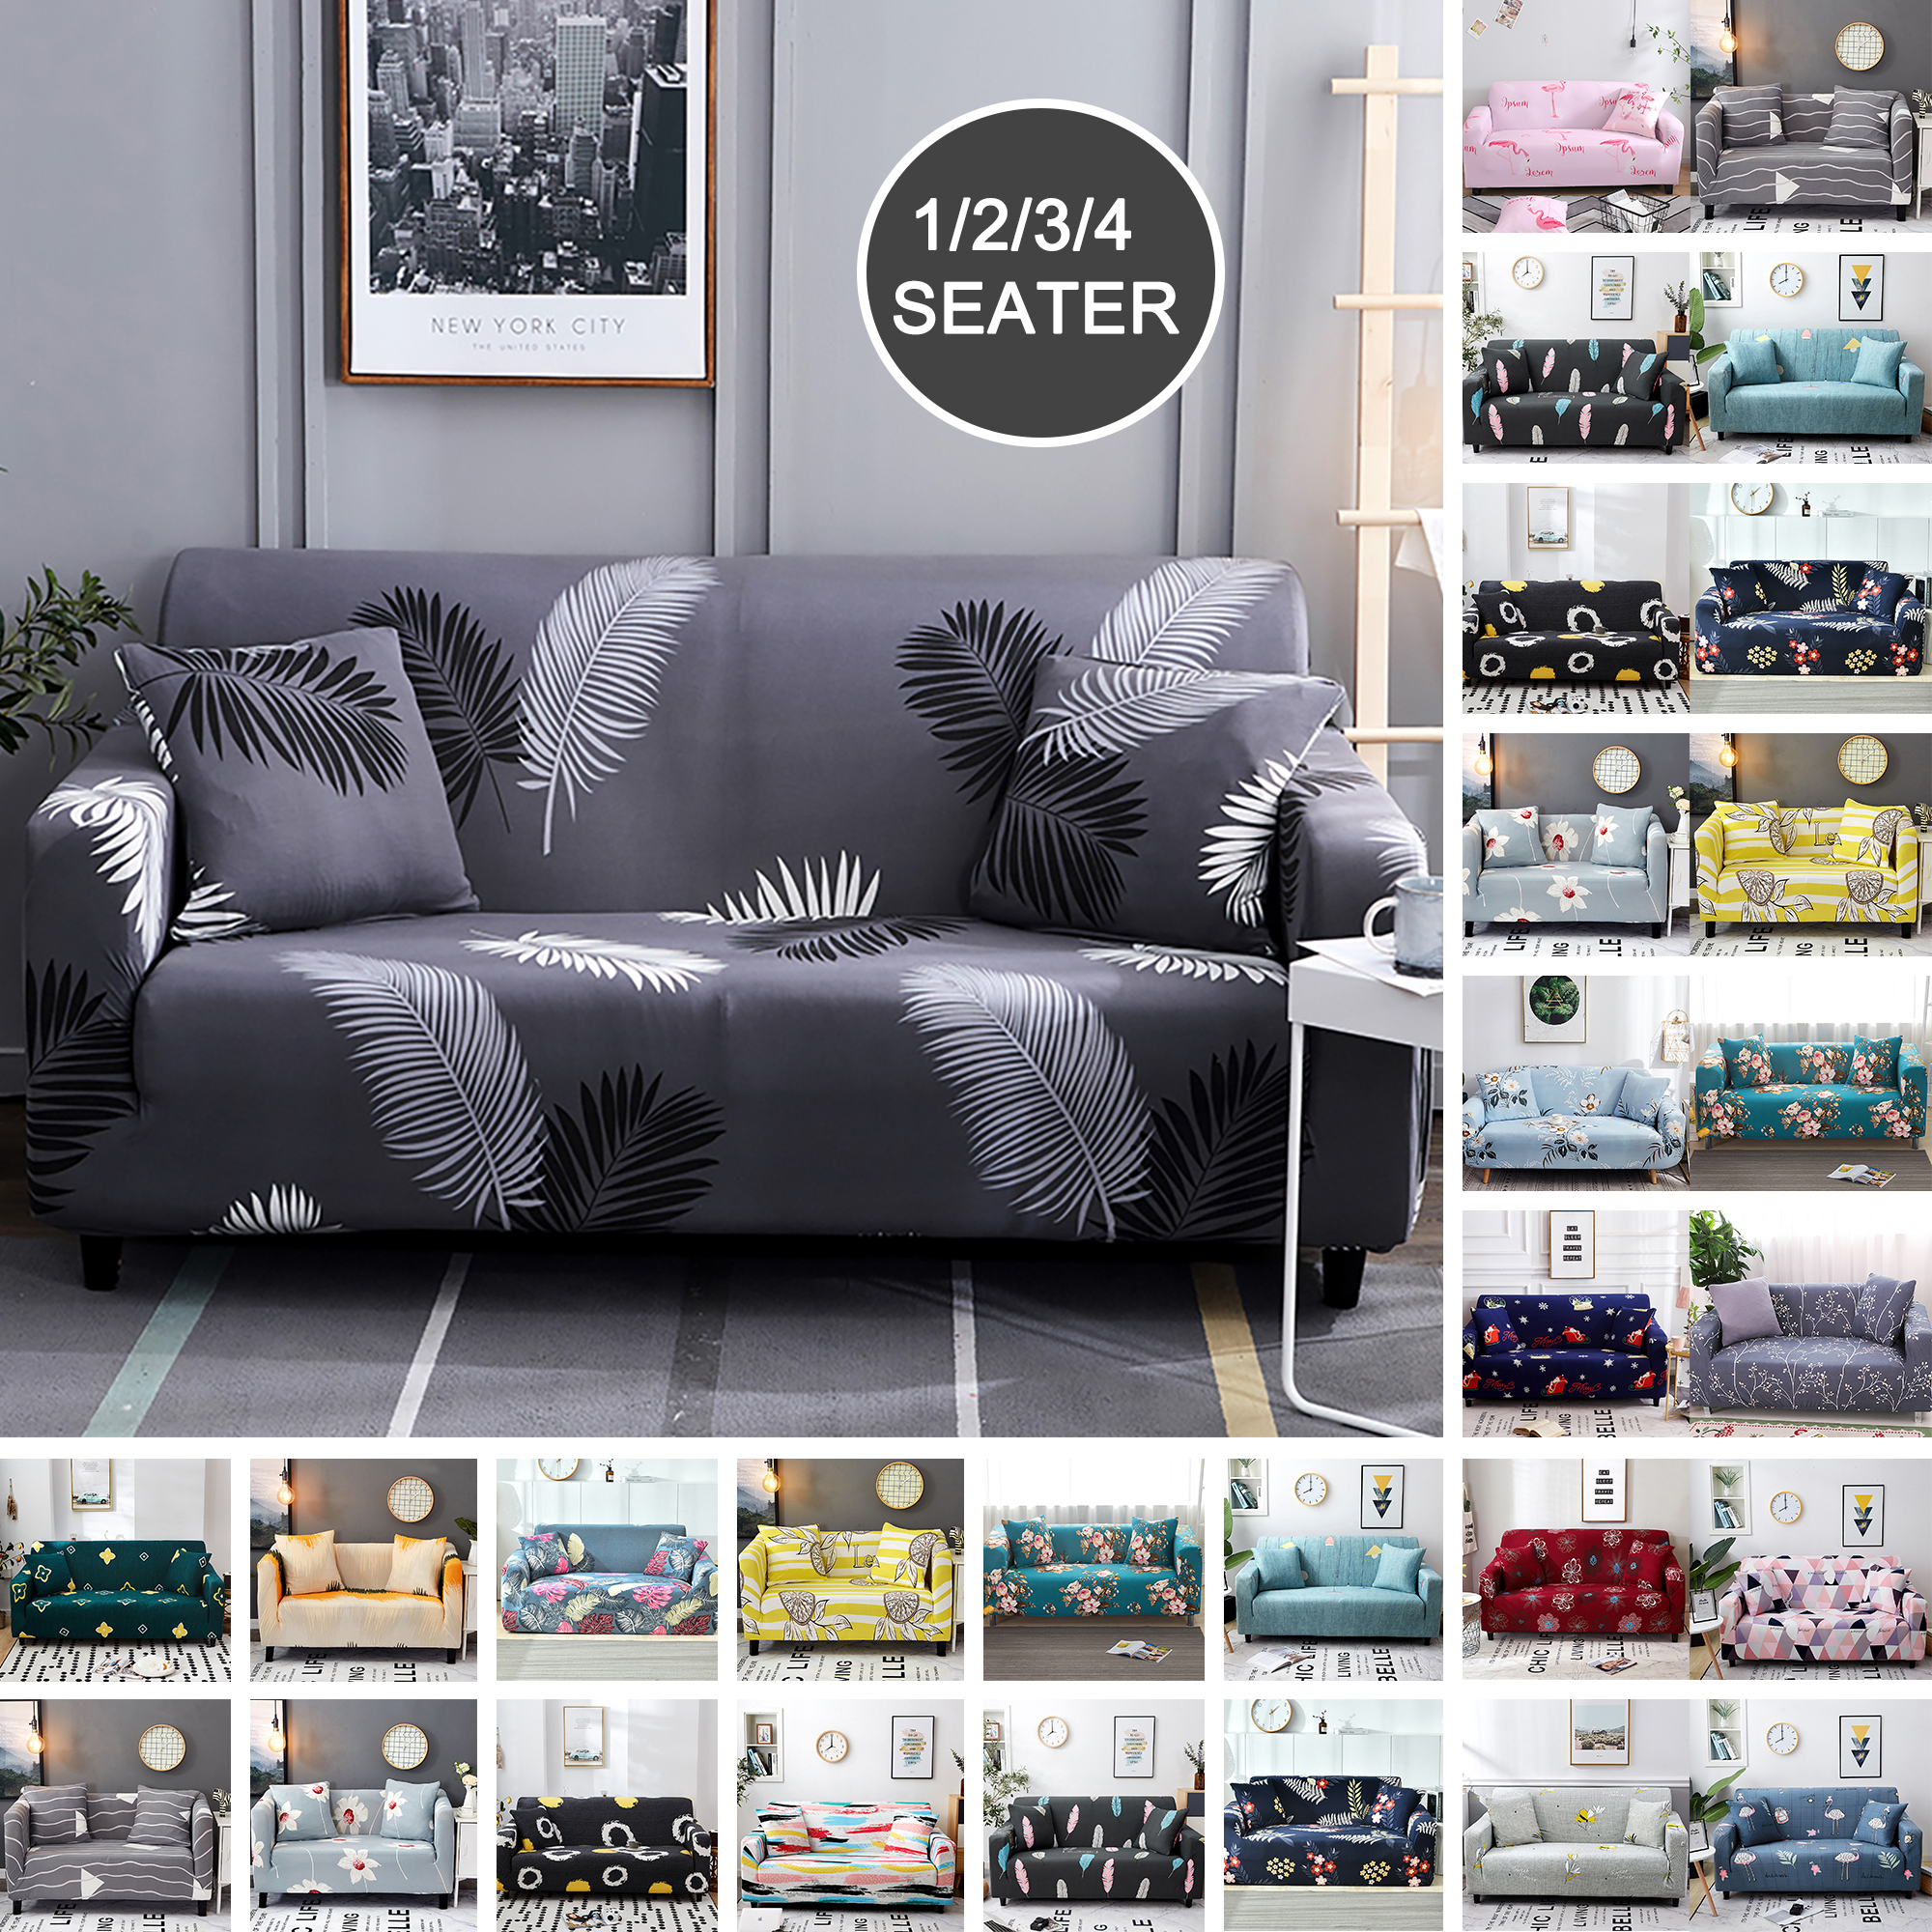 Stretch Fit Lounge Couch Sofa Cover Slipcover Recliner Protector 1//2//3//4 Seater